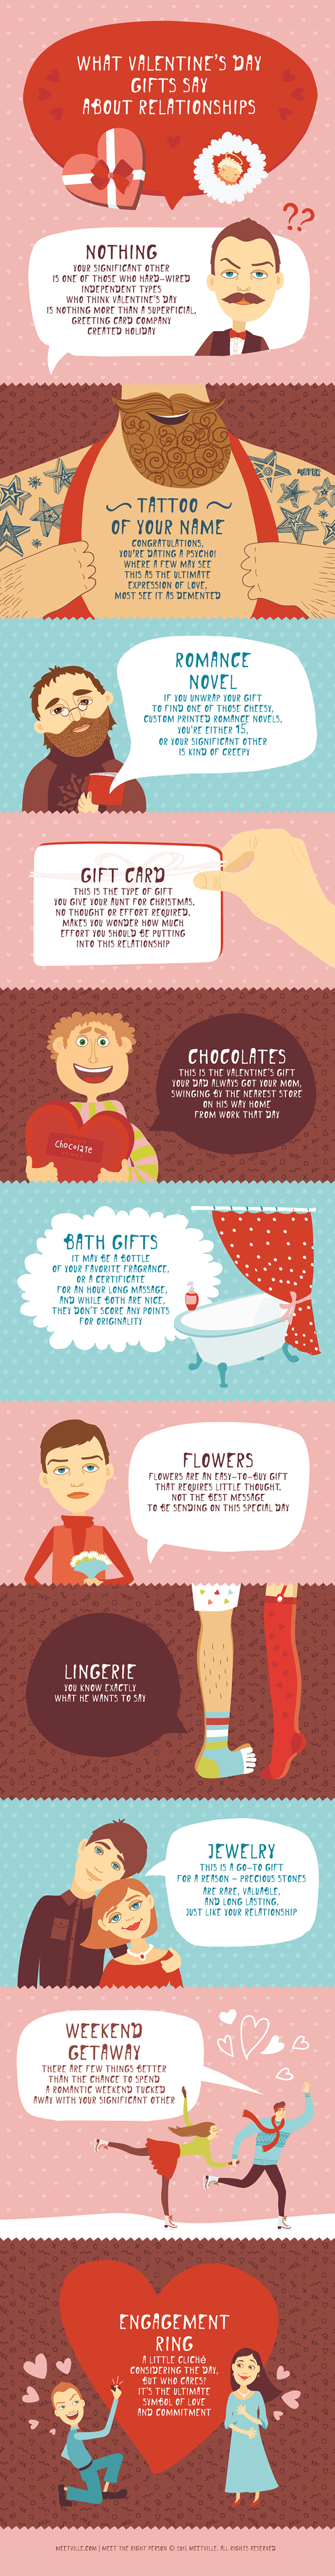 What Valentine's Day Gifts Say about Relationships Infographic dating-singles-meetville-matchmaking